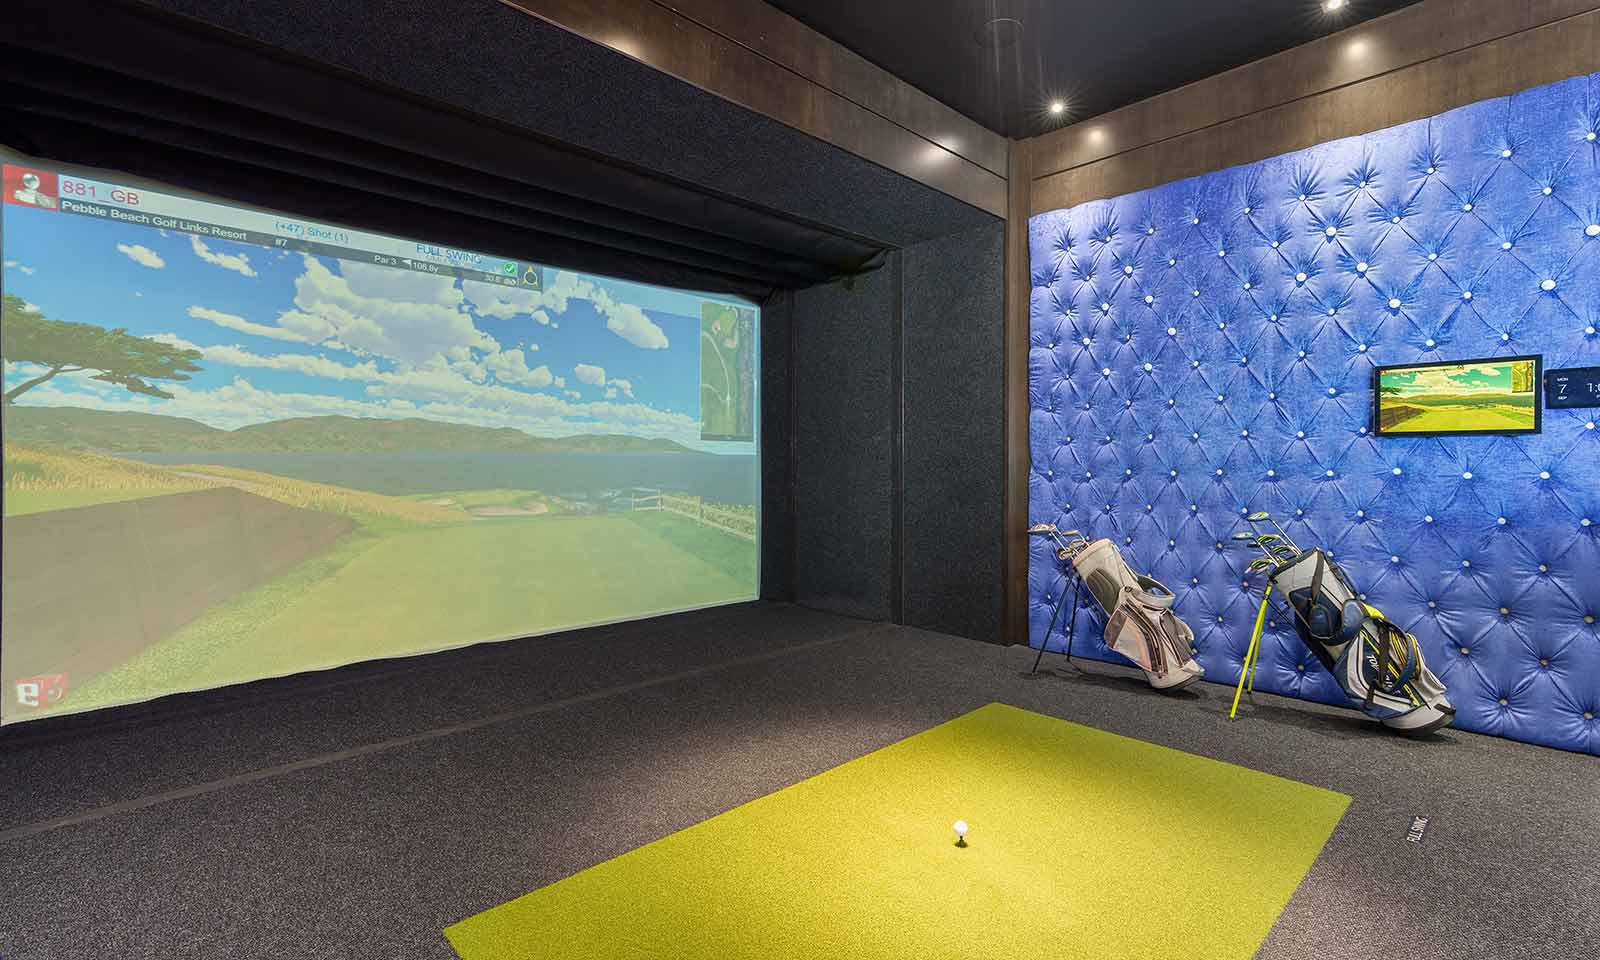 [amenities:Golf-Simulator:1] Golf Simulator